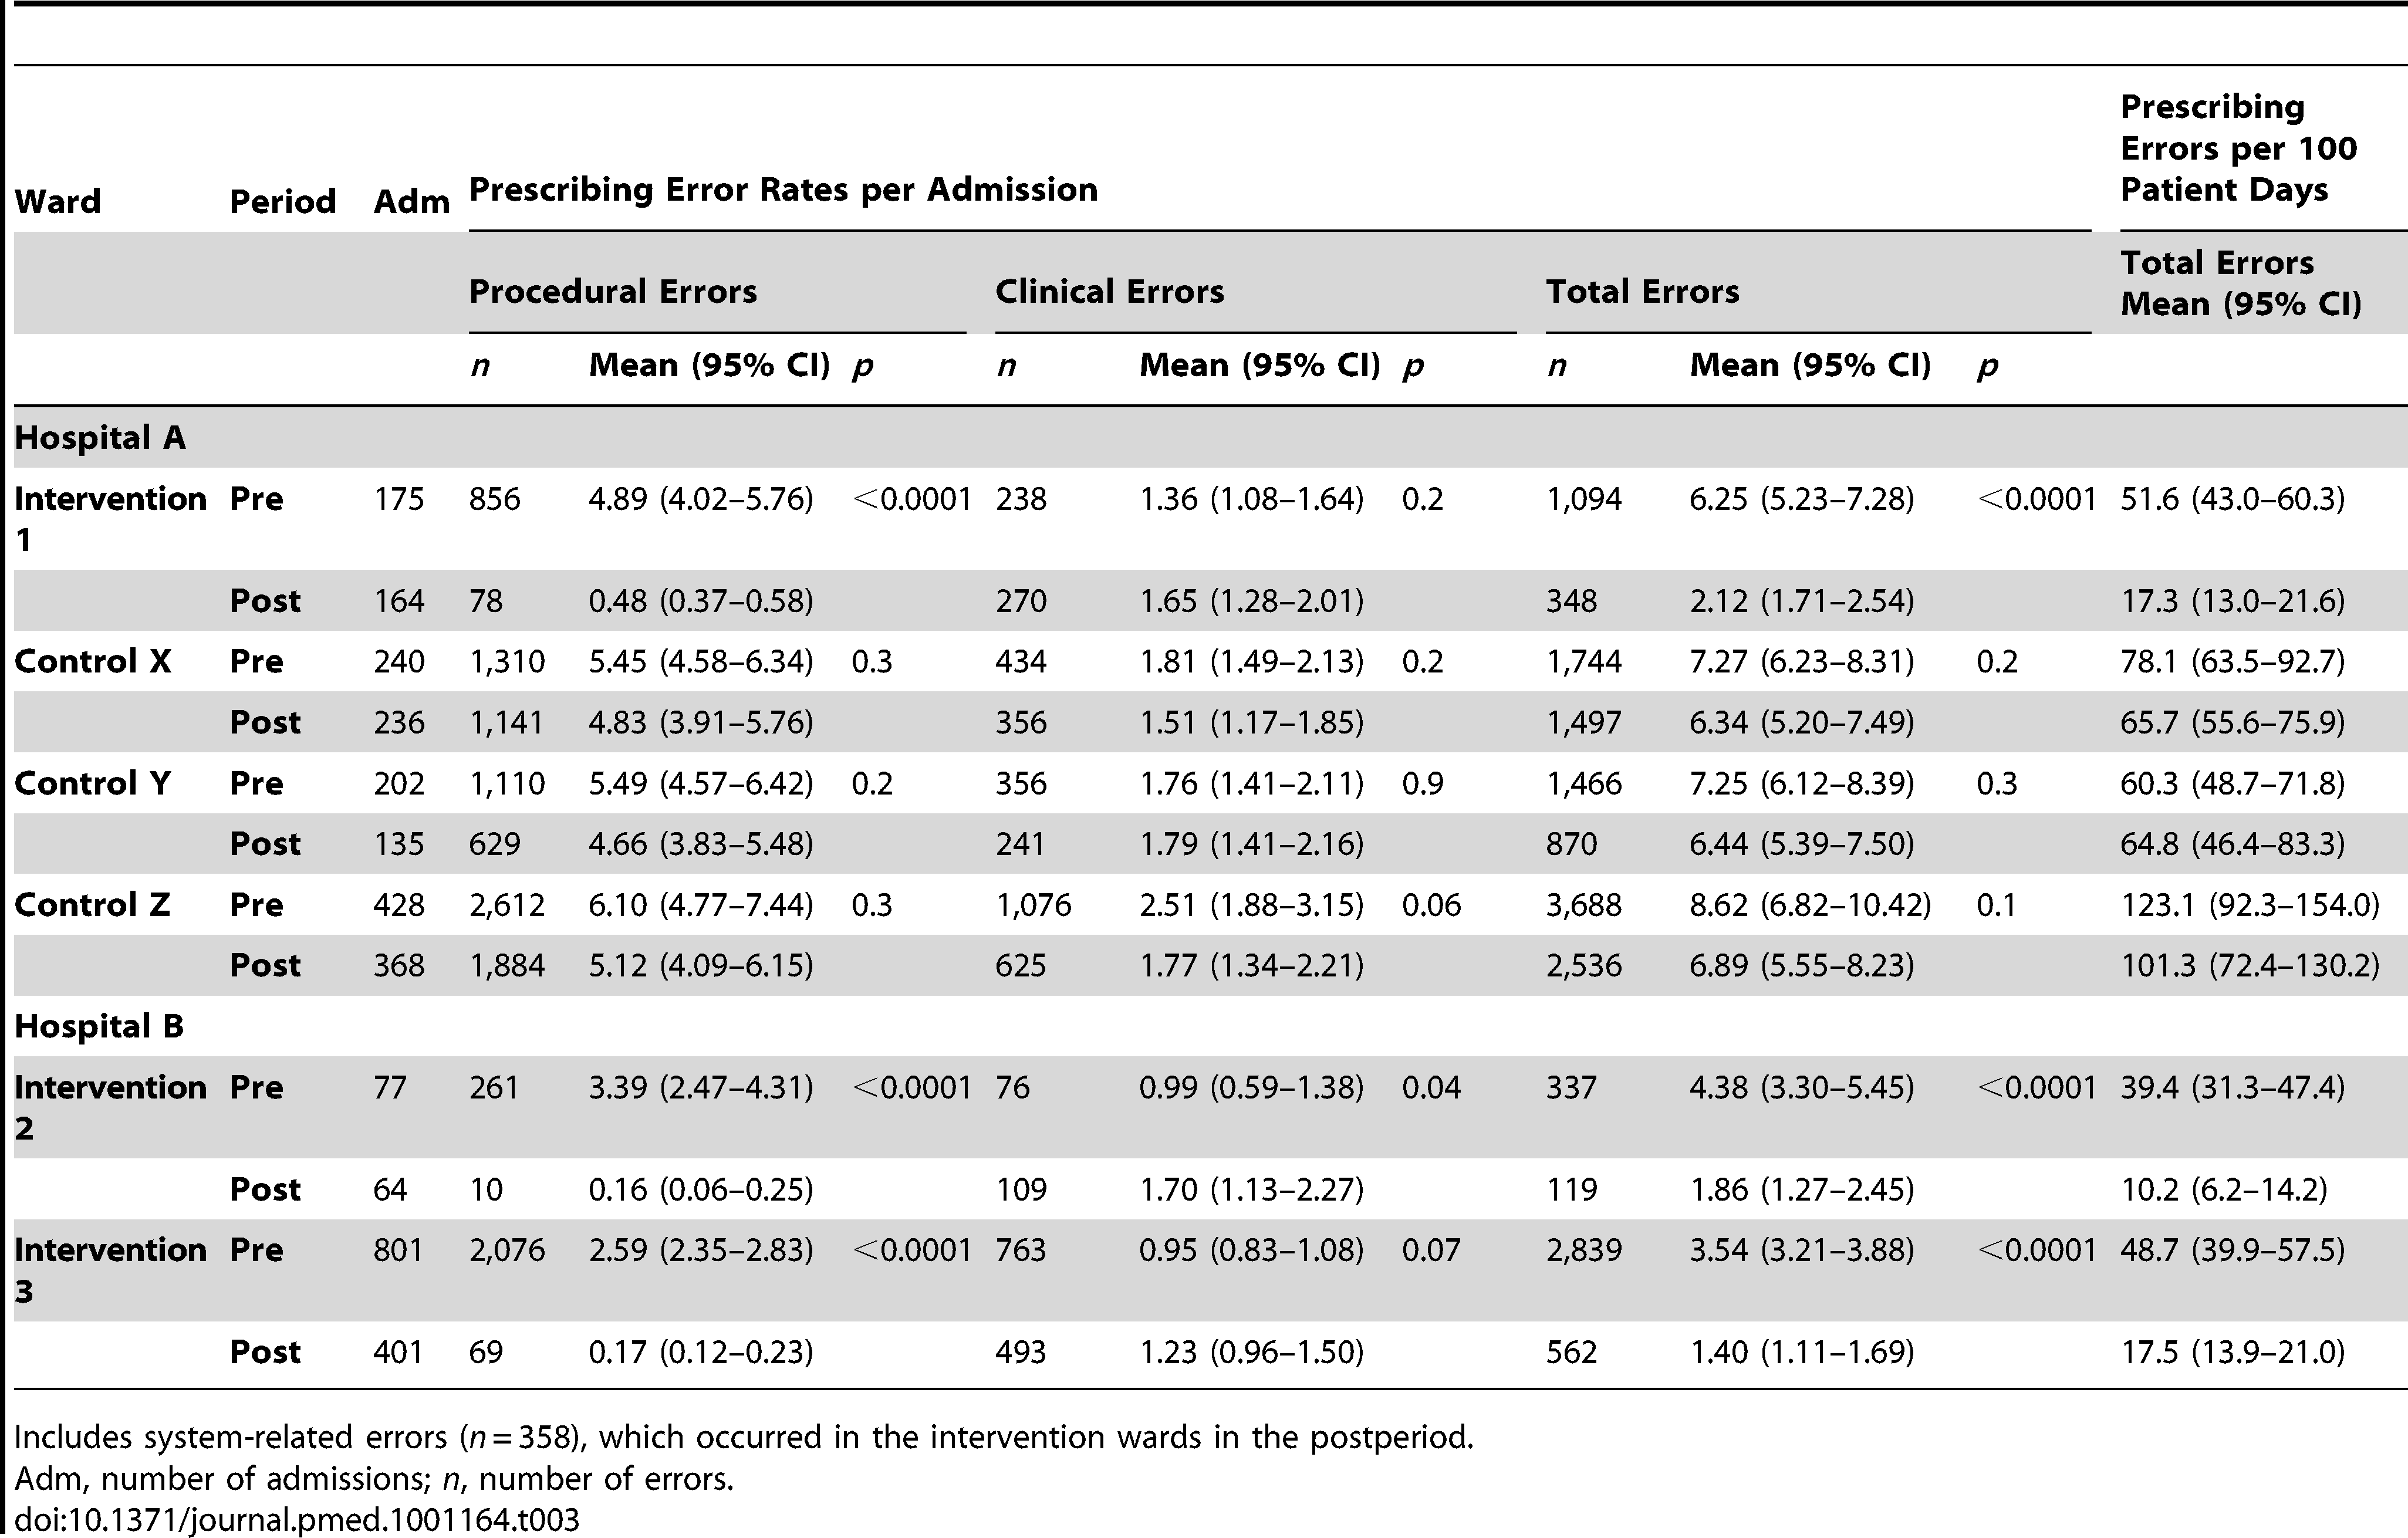 Comparison of prescribing error rates pre- and postelectronic prescribing system implementation.